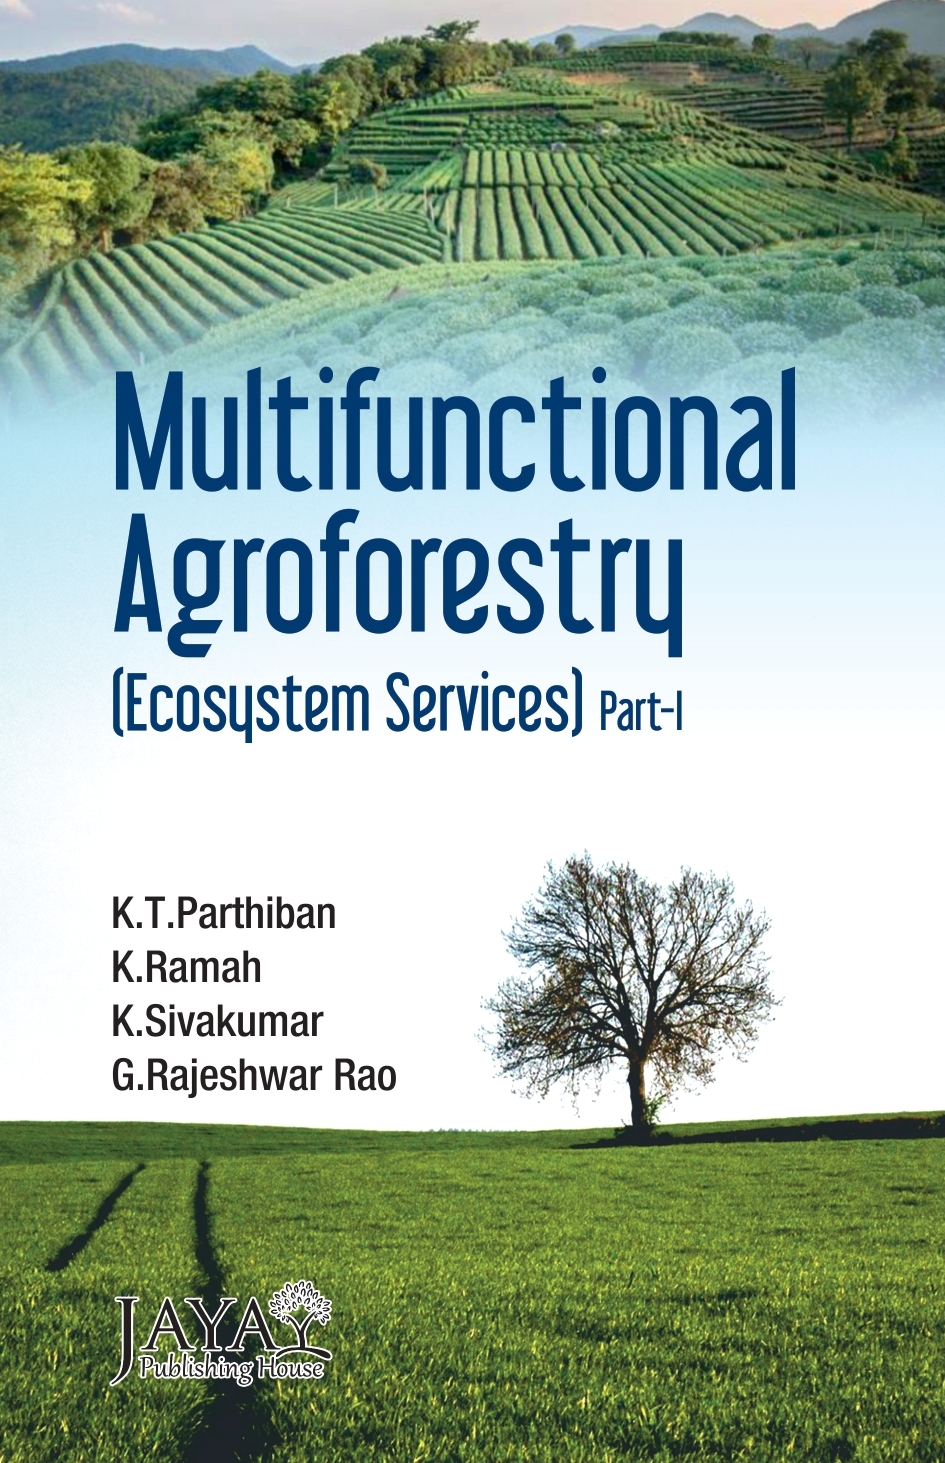 Multifunctional Agroforestry : Ecosystem Services (2 Parts)